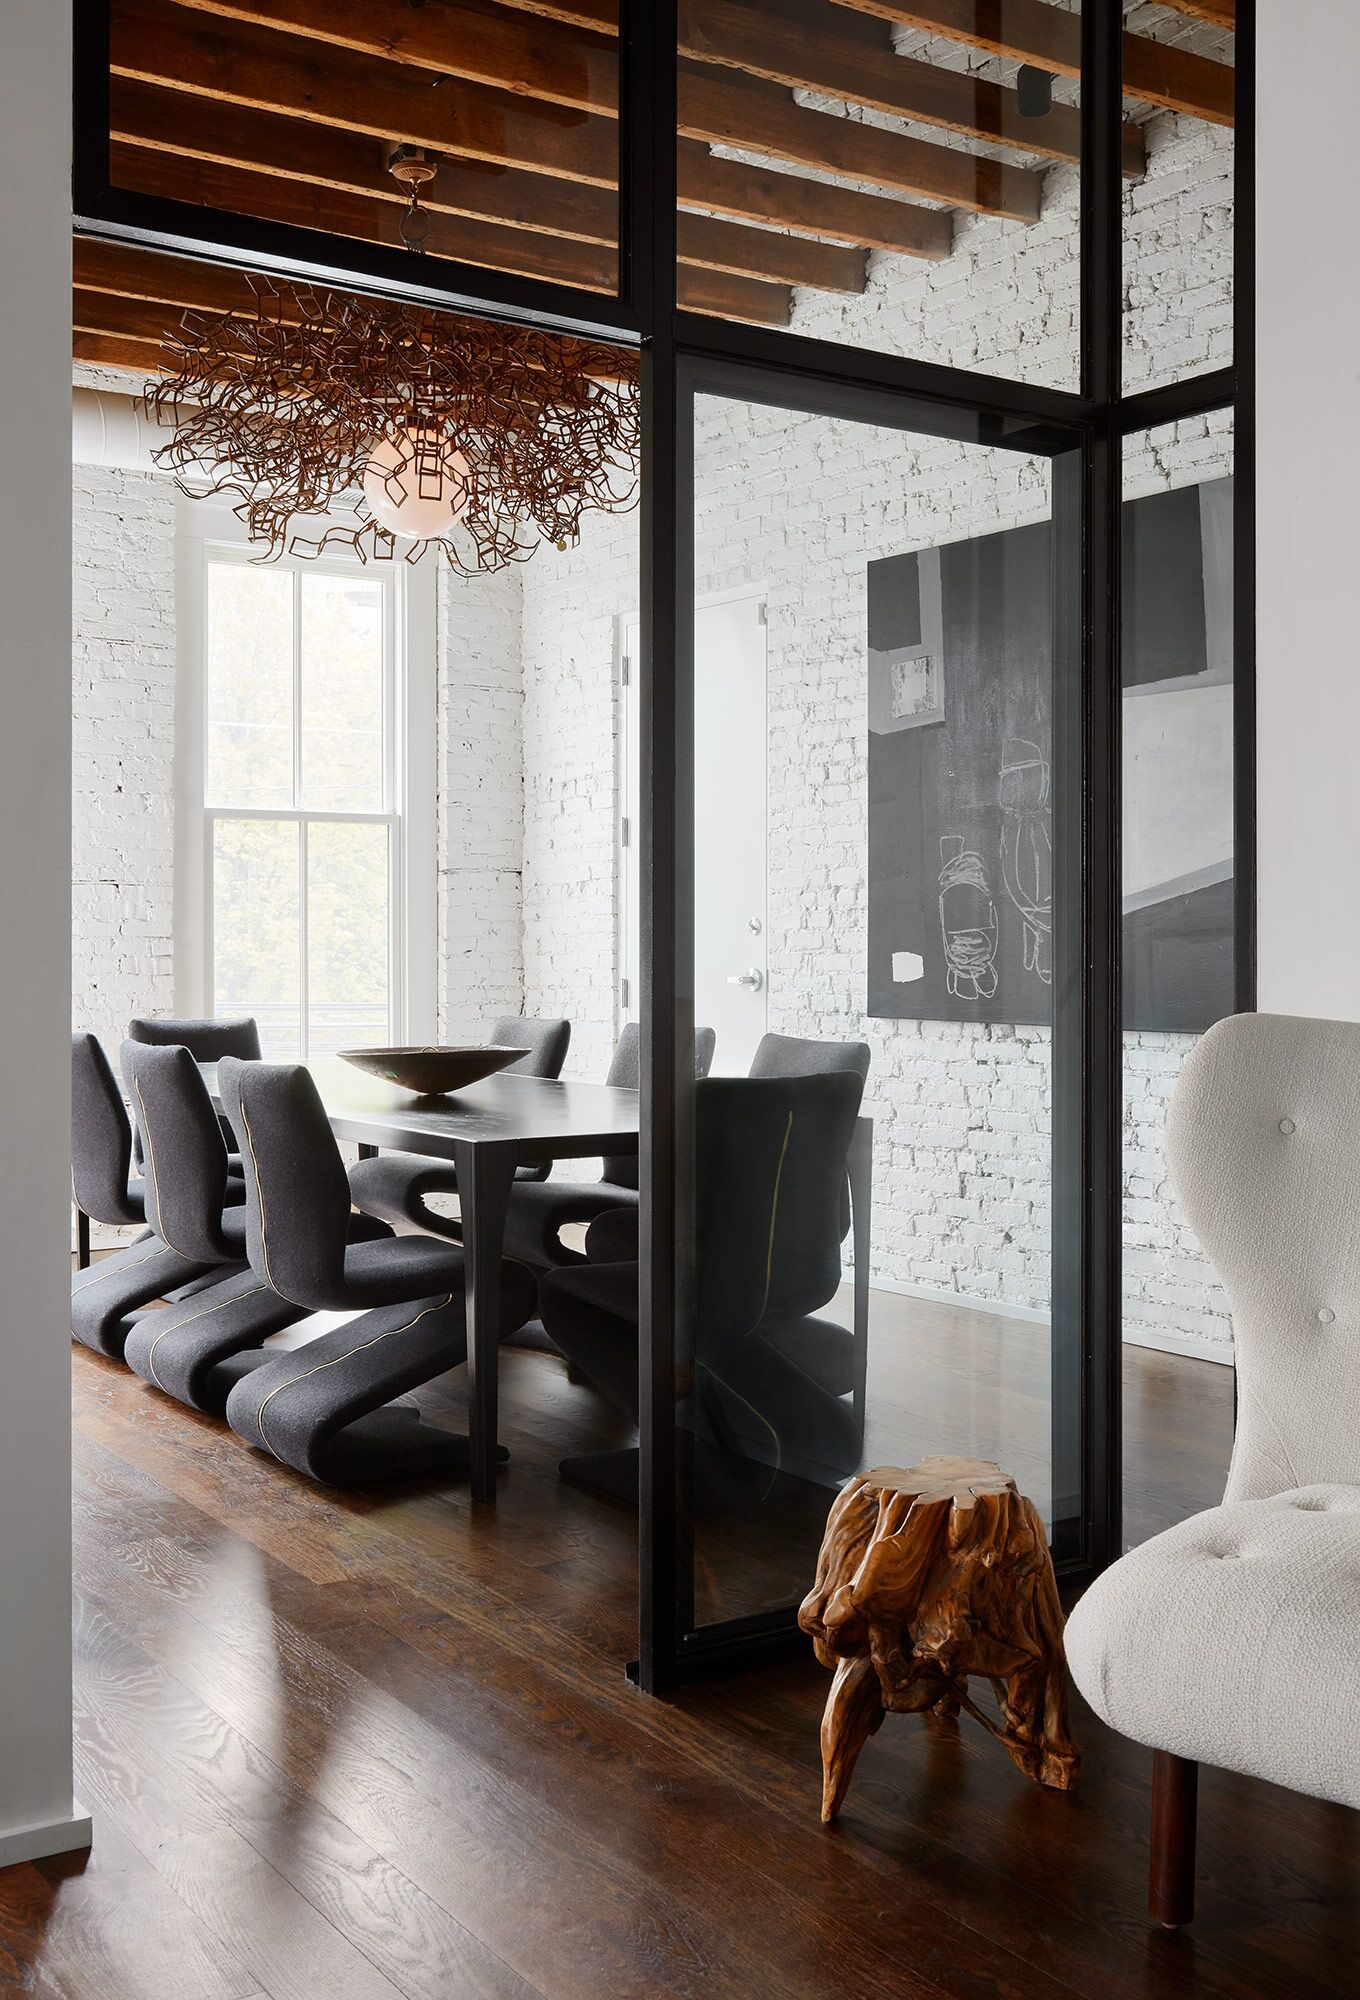 Rustic modern interior design and luxurious minimal modern style in a space by Michael Del Piero. See more Black & White Rustic Modern & Vintage Chic Design Inspo in this story on Hello Lovely.